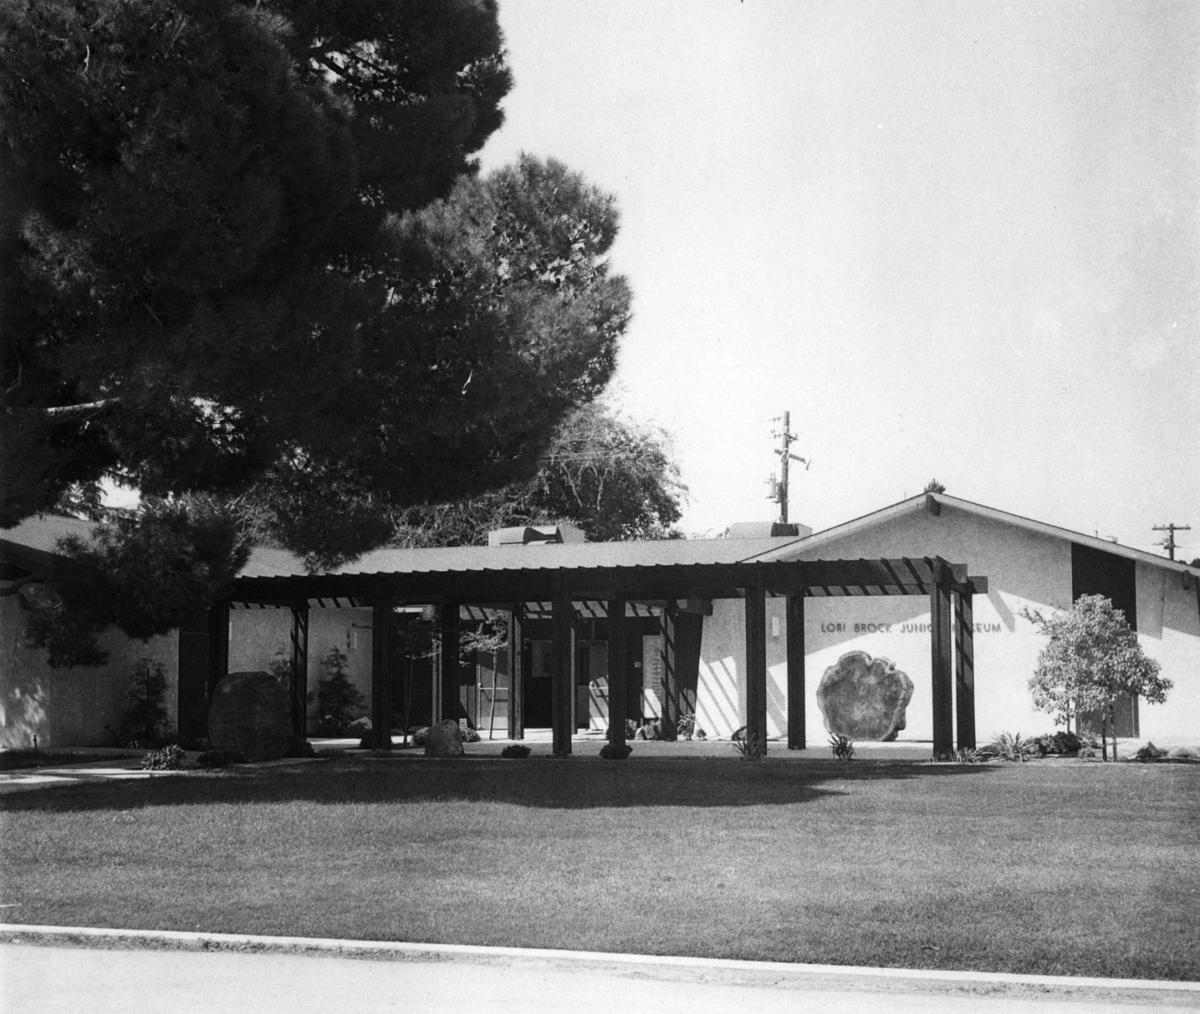 Lori Brock Junior Museum, 1976.jpg